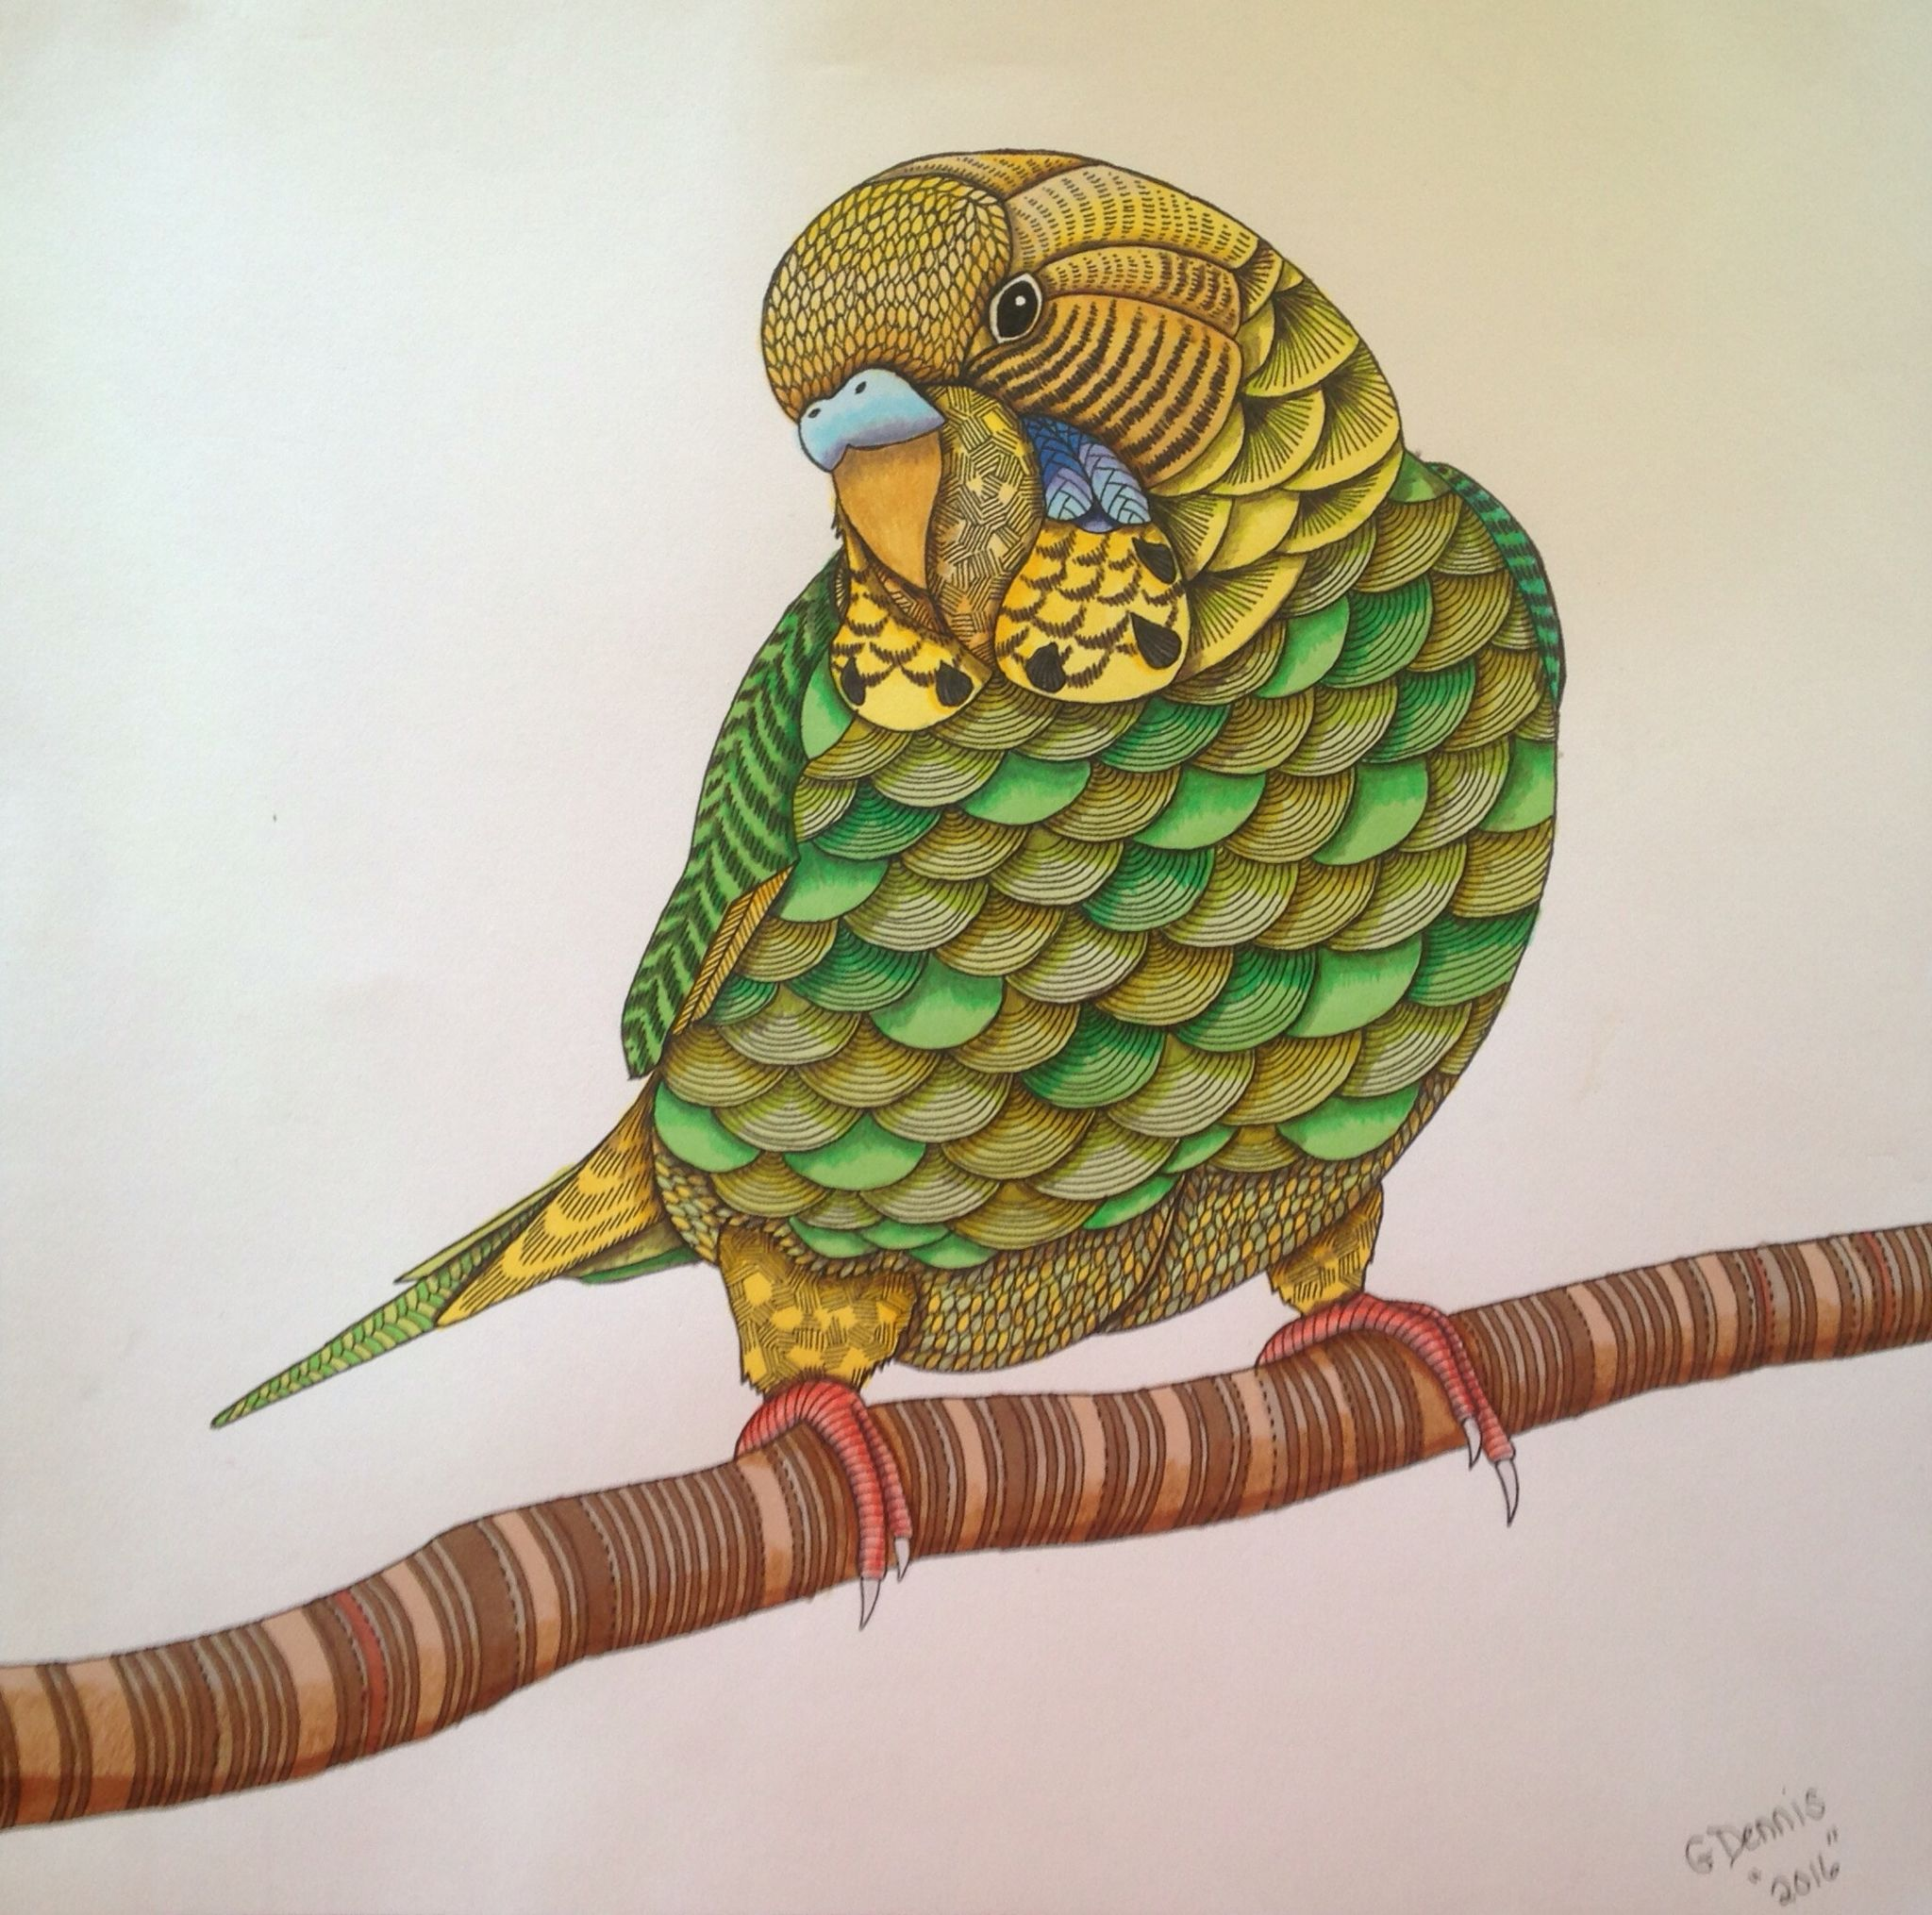 G Dennis Colored Budgie From Coloring Book Animal Kingdom By Millie Marotta Millie Marotta Animal Kingdom Animal Coloring Books Millie Marotta